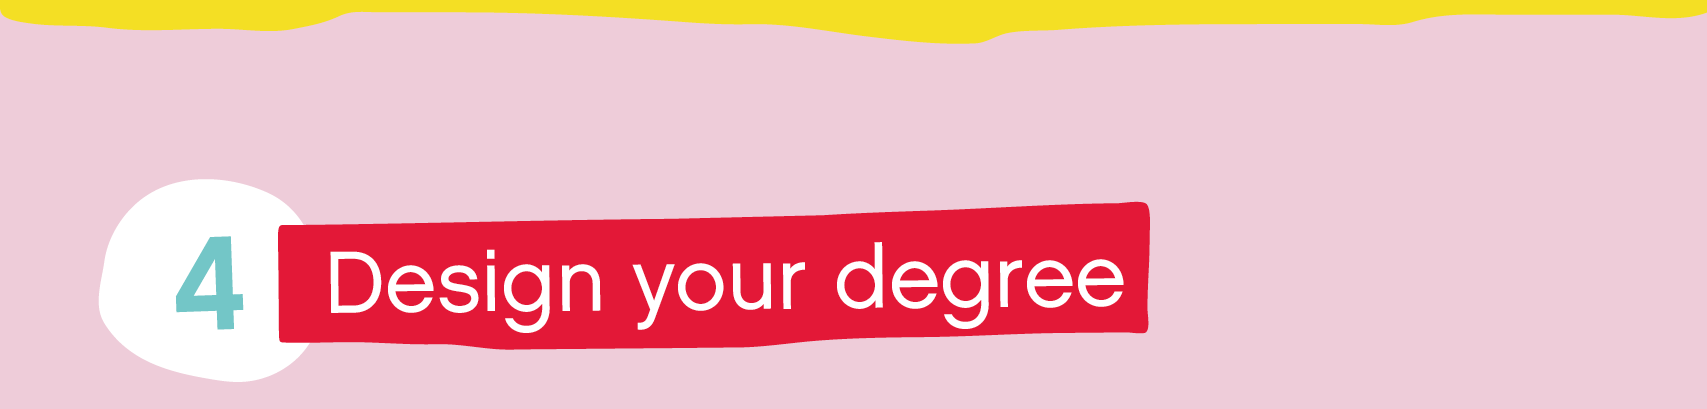 Design your degree